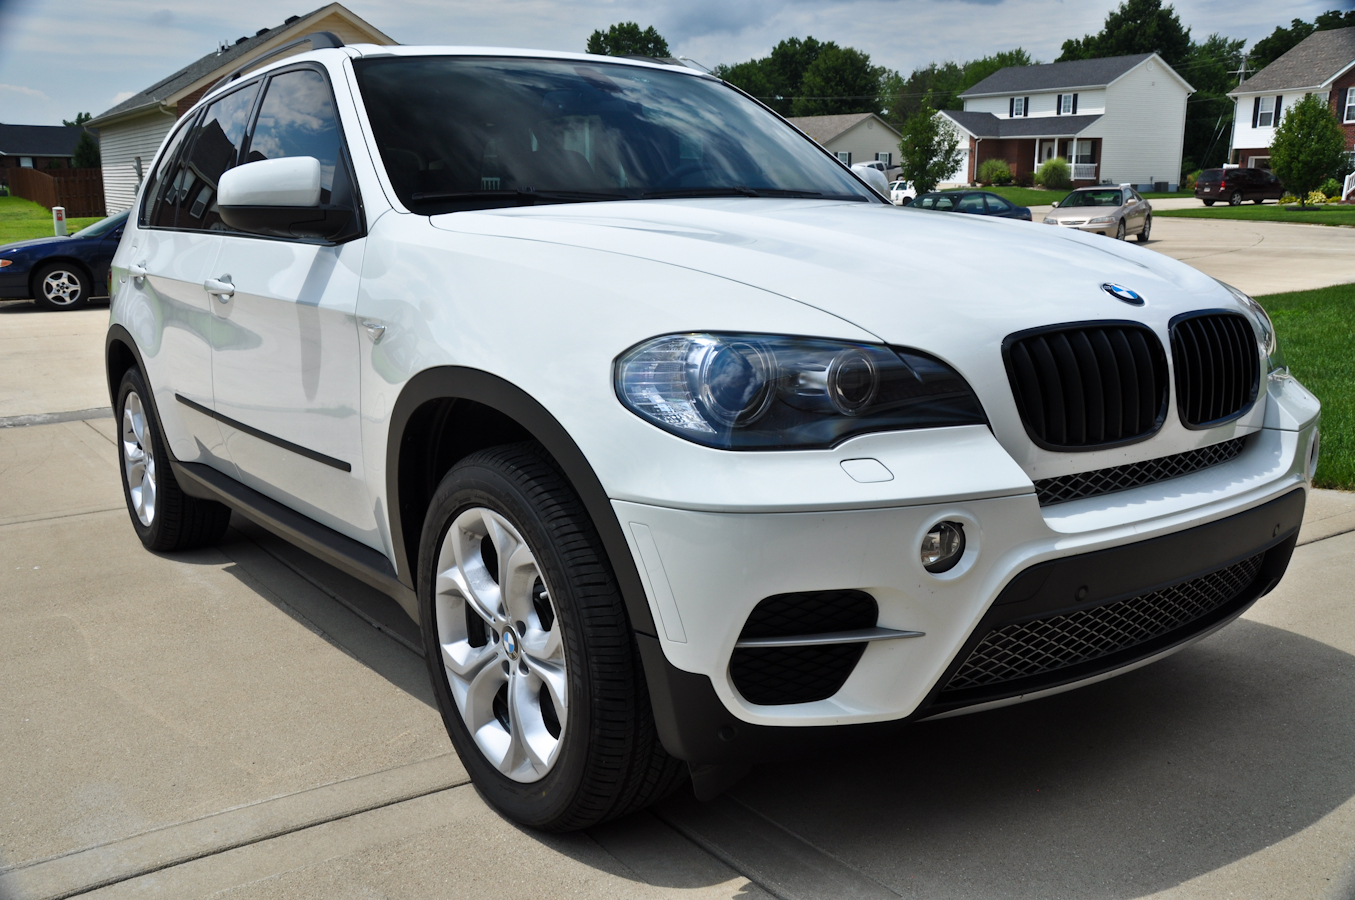 for sale very clean 2011 bmw x5d w sav package bmw m5 forum and m6 forums. Black Bedroom Furniture Sets. Home Design Ideas